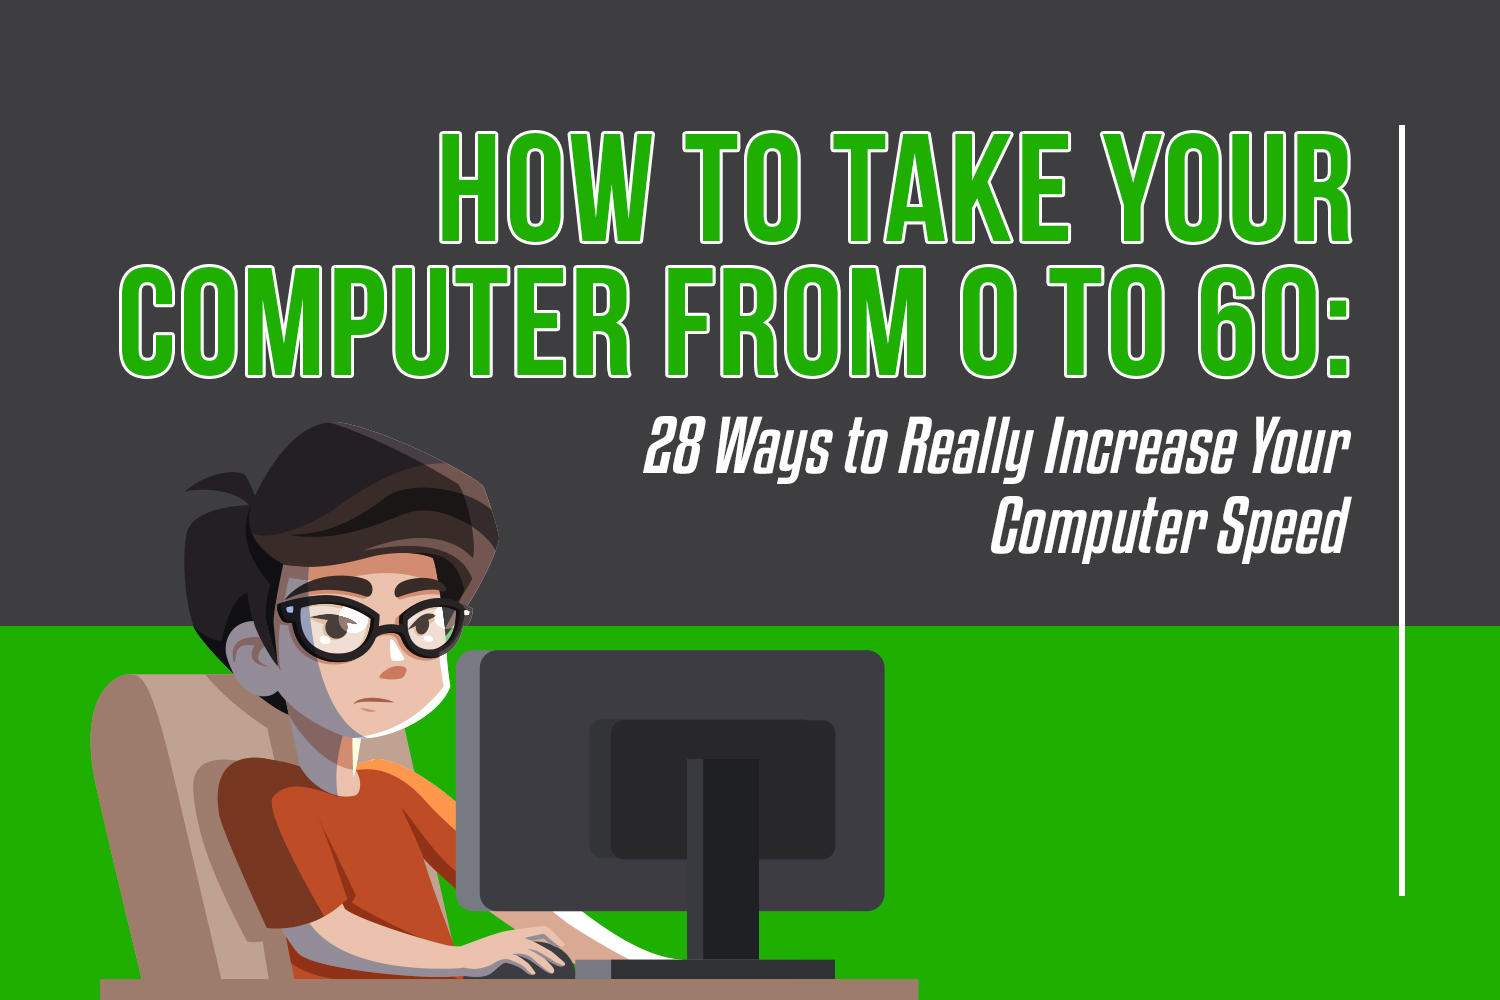 increase your computer speed